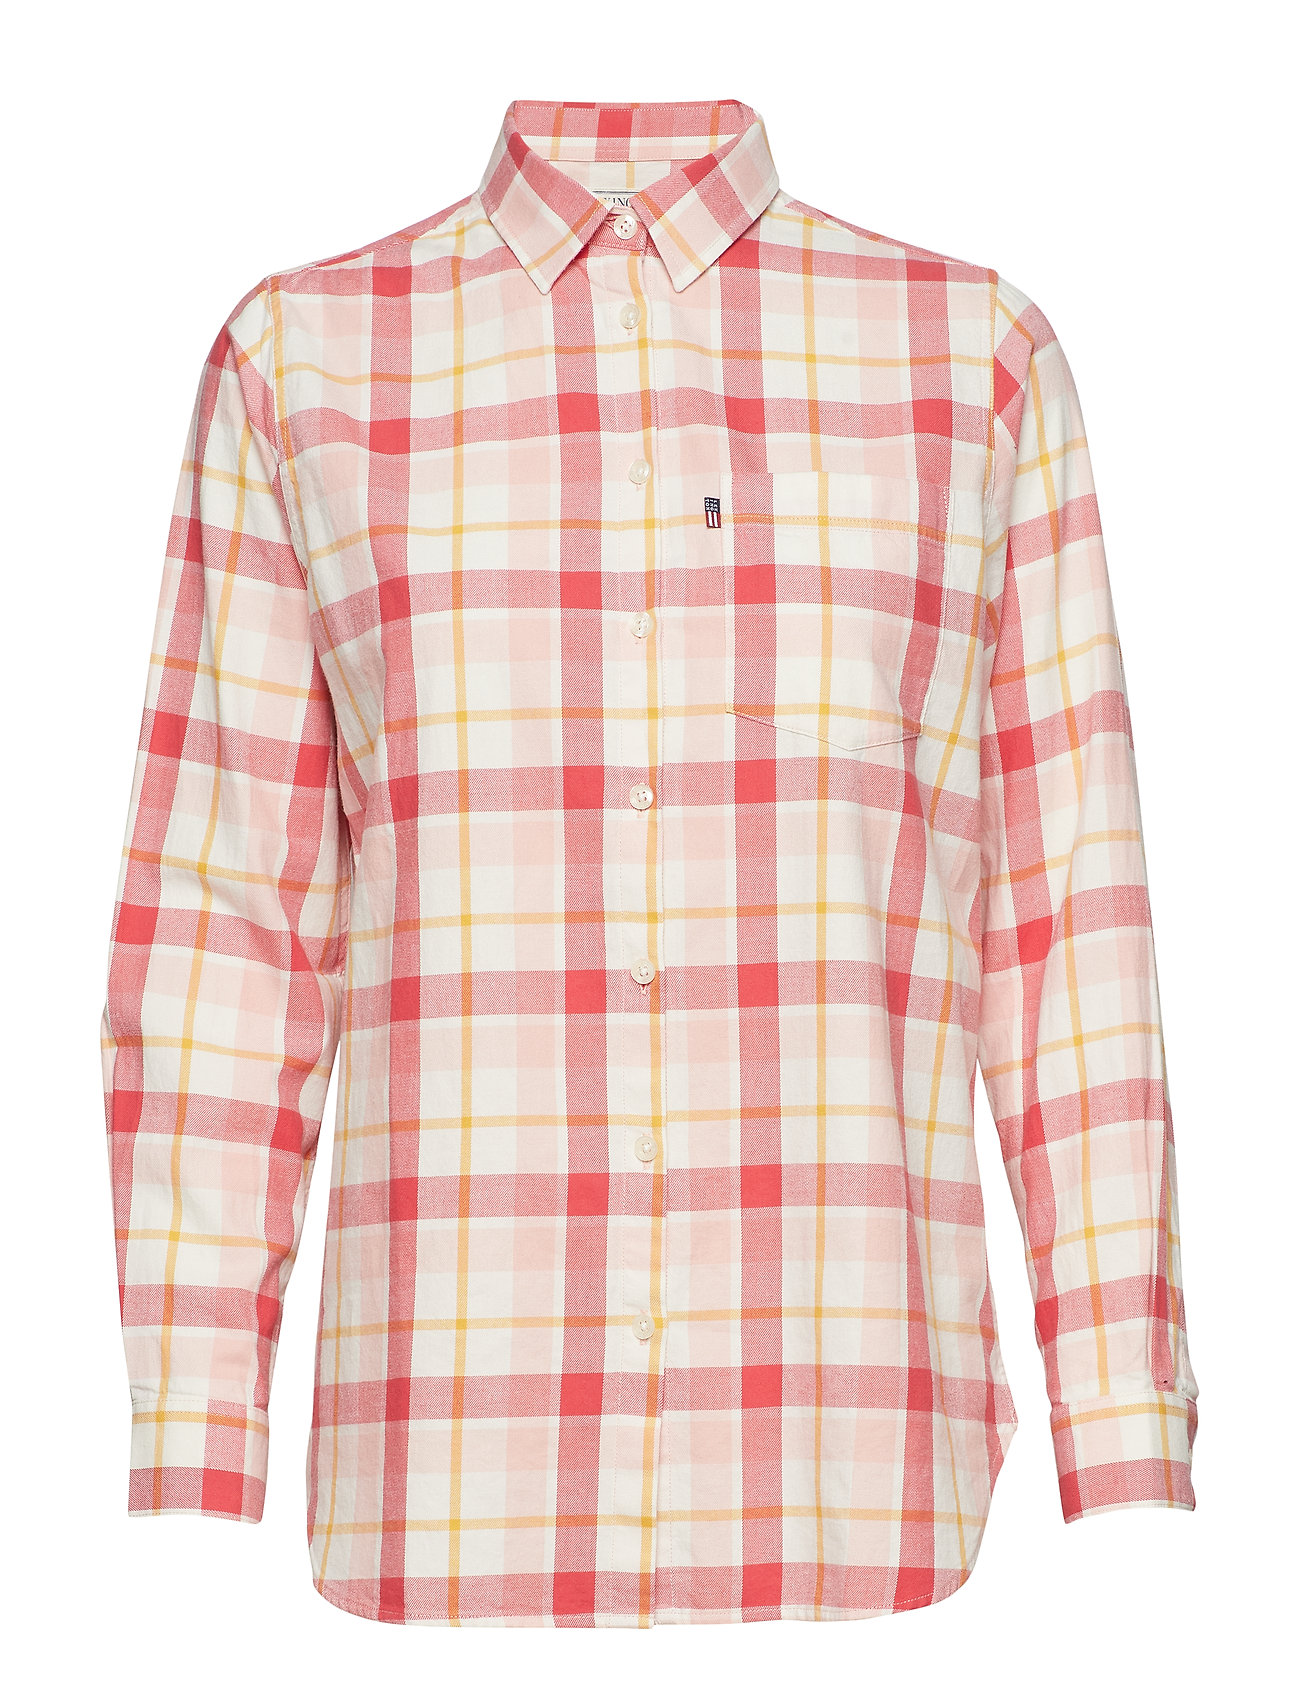 Lexington Clothing Isa Flannel Shirt - PINK MULTI CHECK